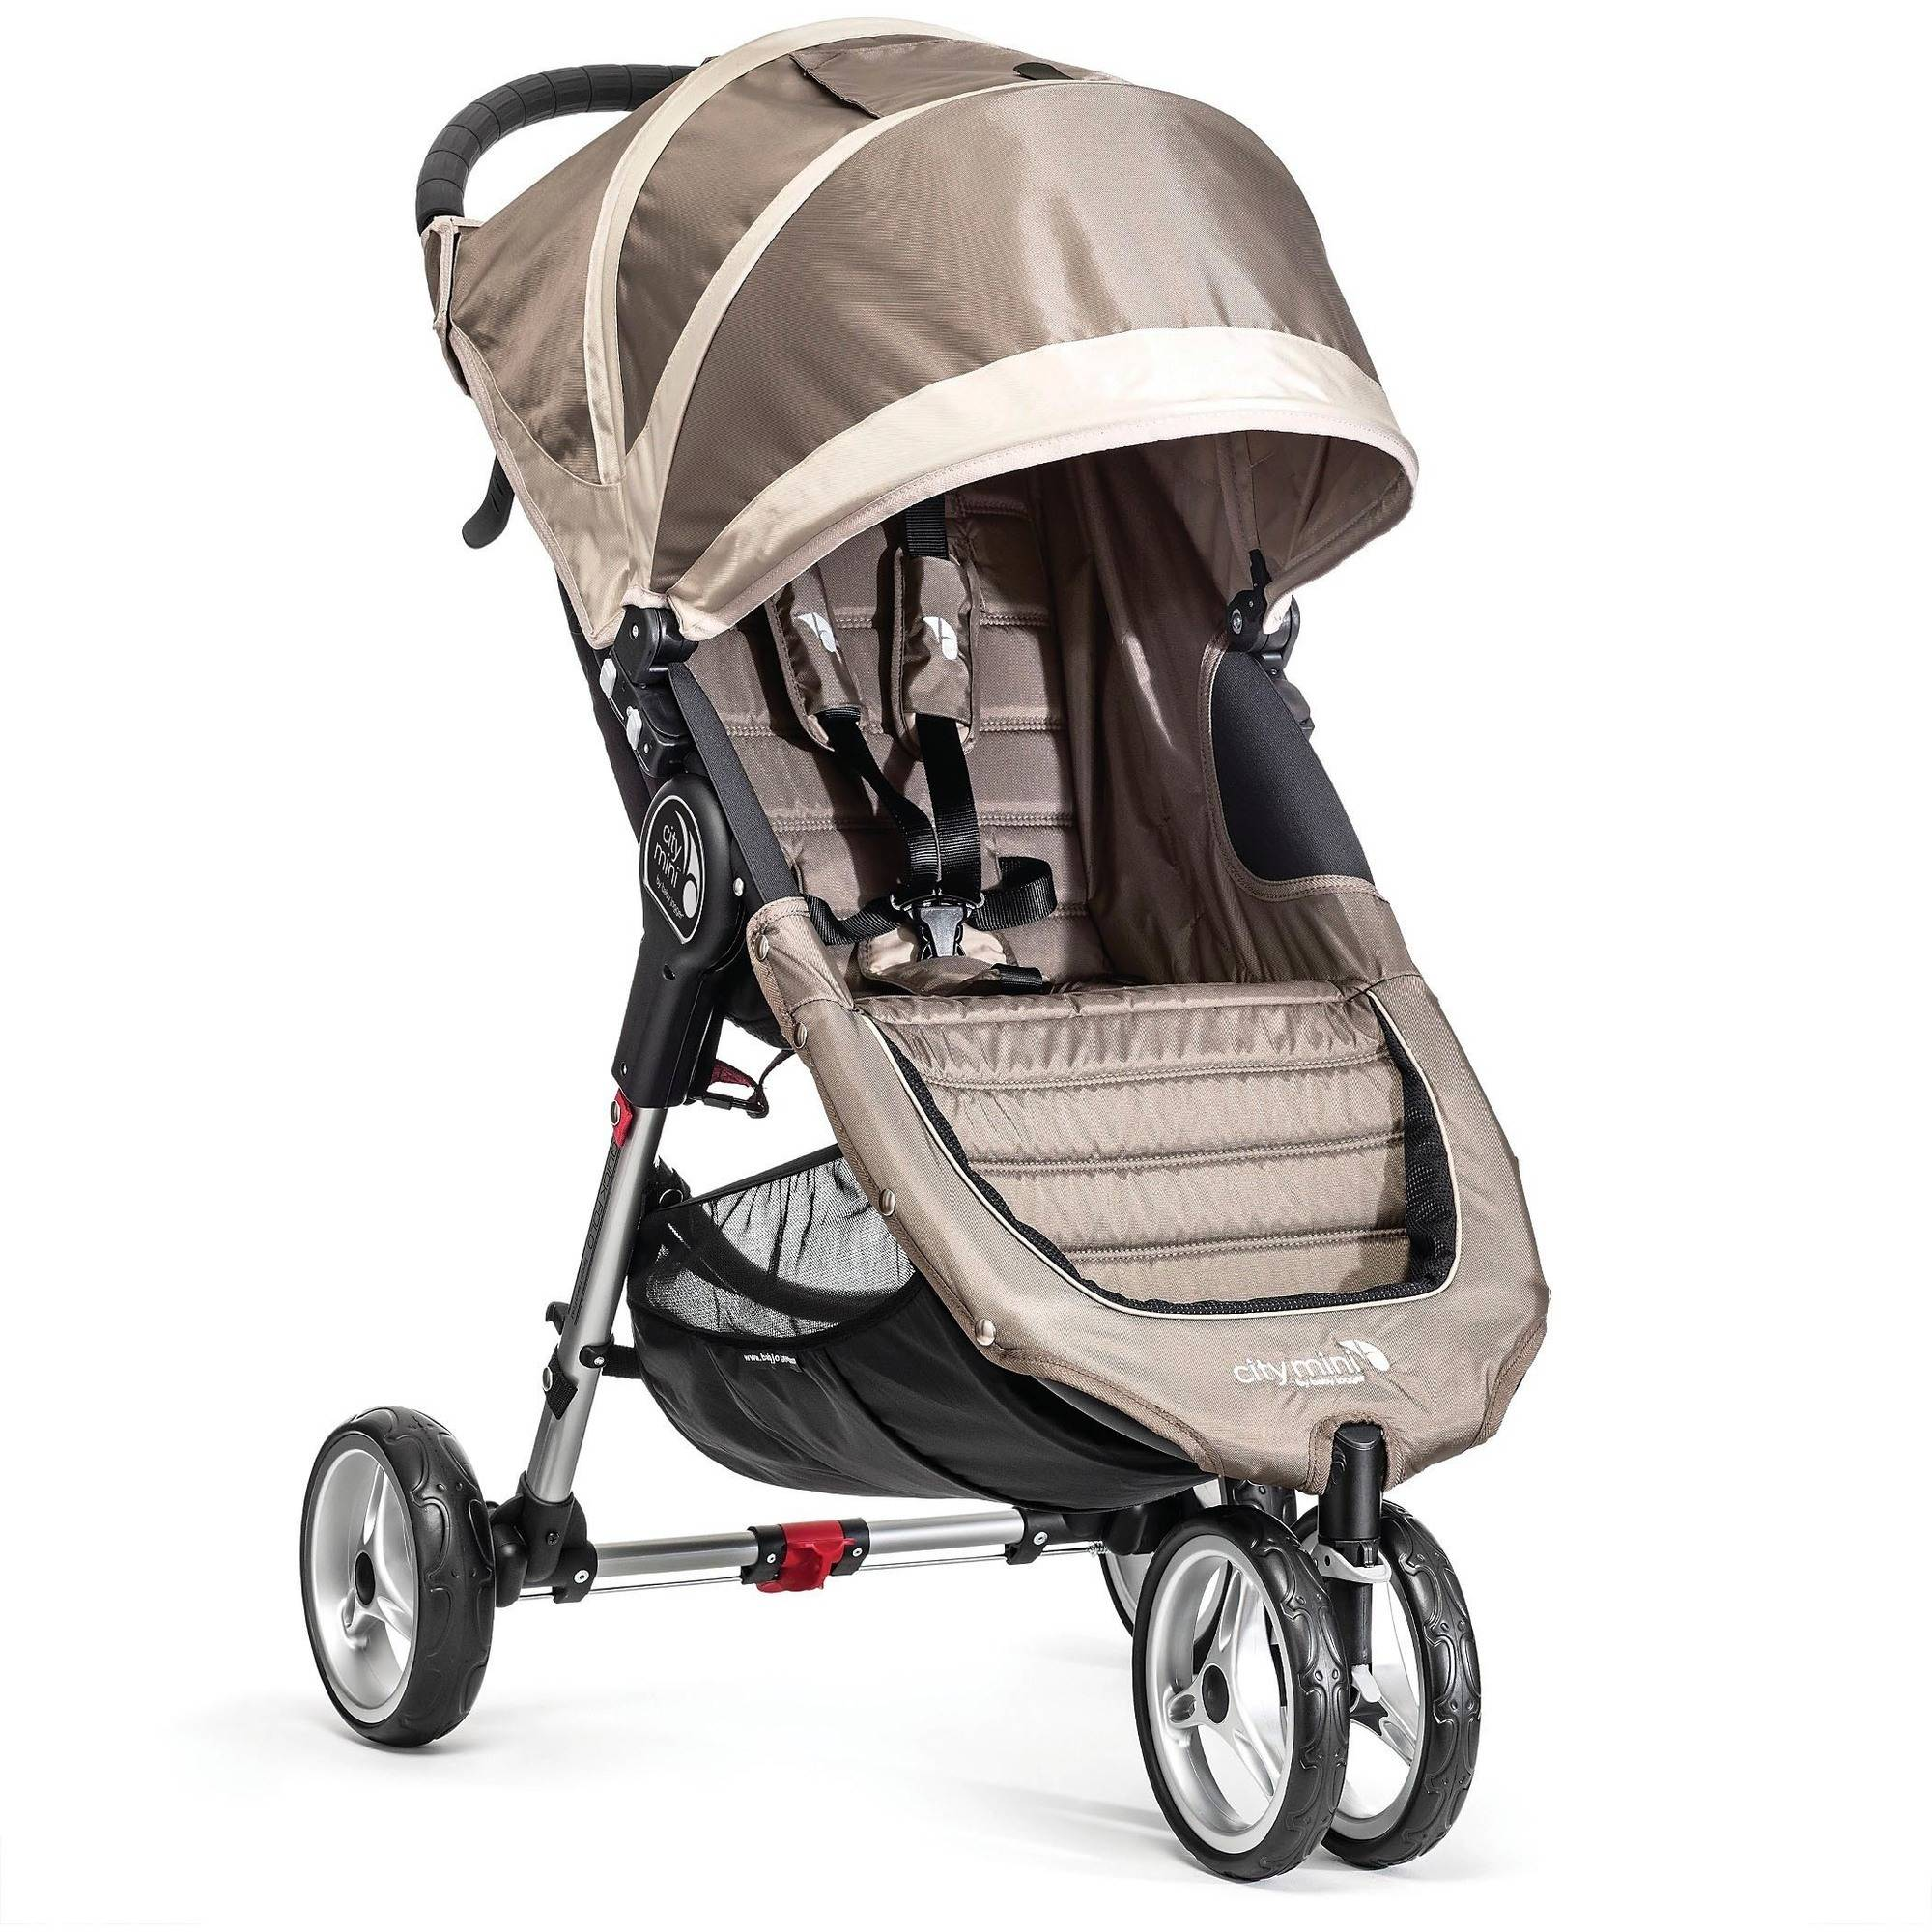 Baby Jogger City Mini Single Stroller, Sand/Gray